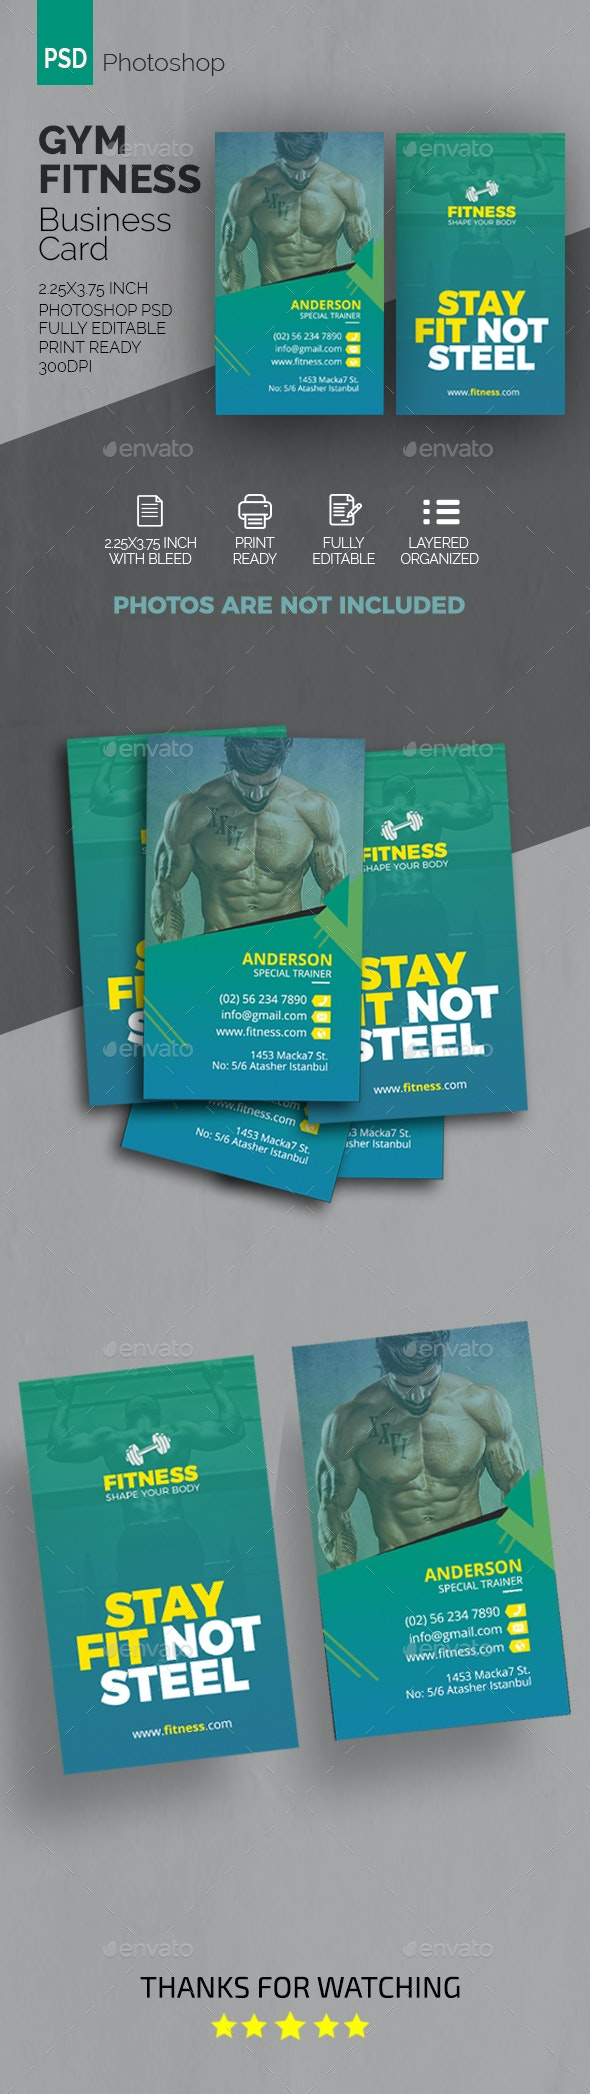 GYM Fitness Business Card - Industry Specific Business Cards